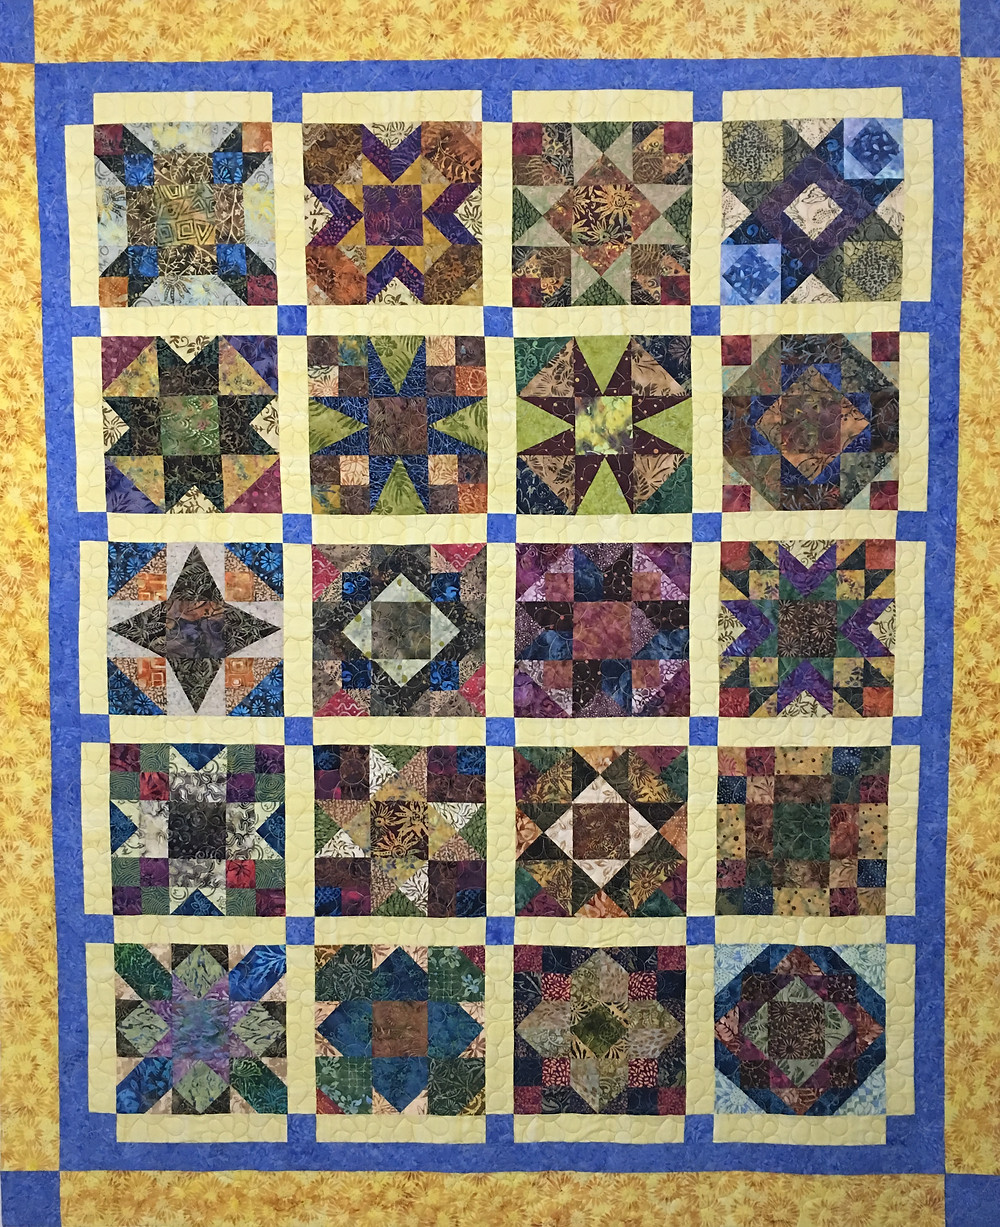 Quilt Club Sizzie Quilt by Jocelyn Robinson